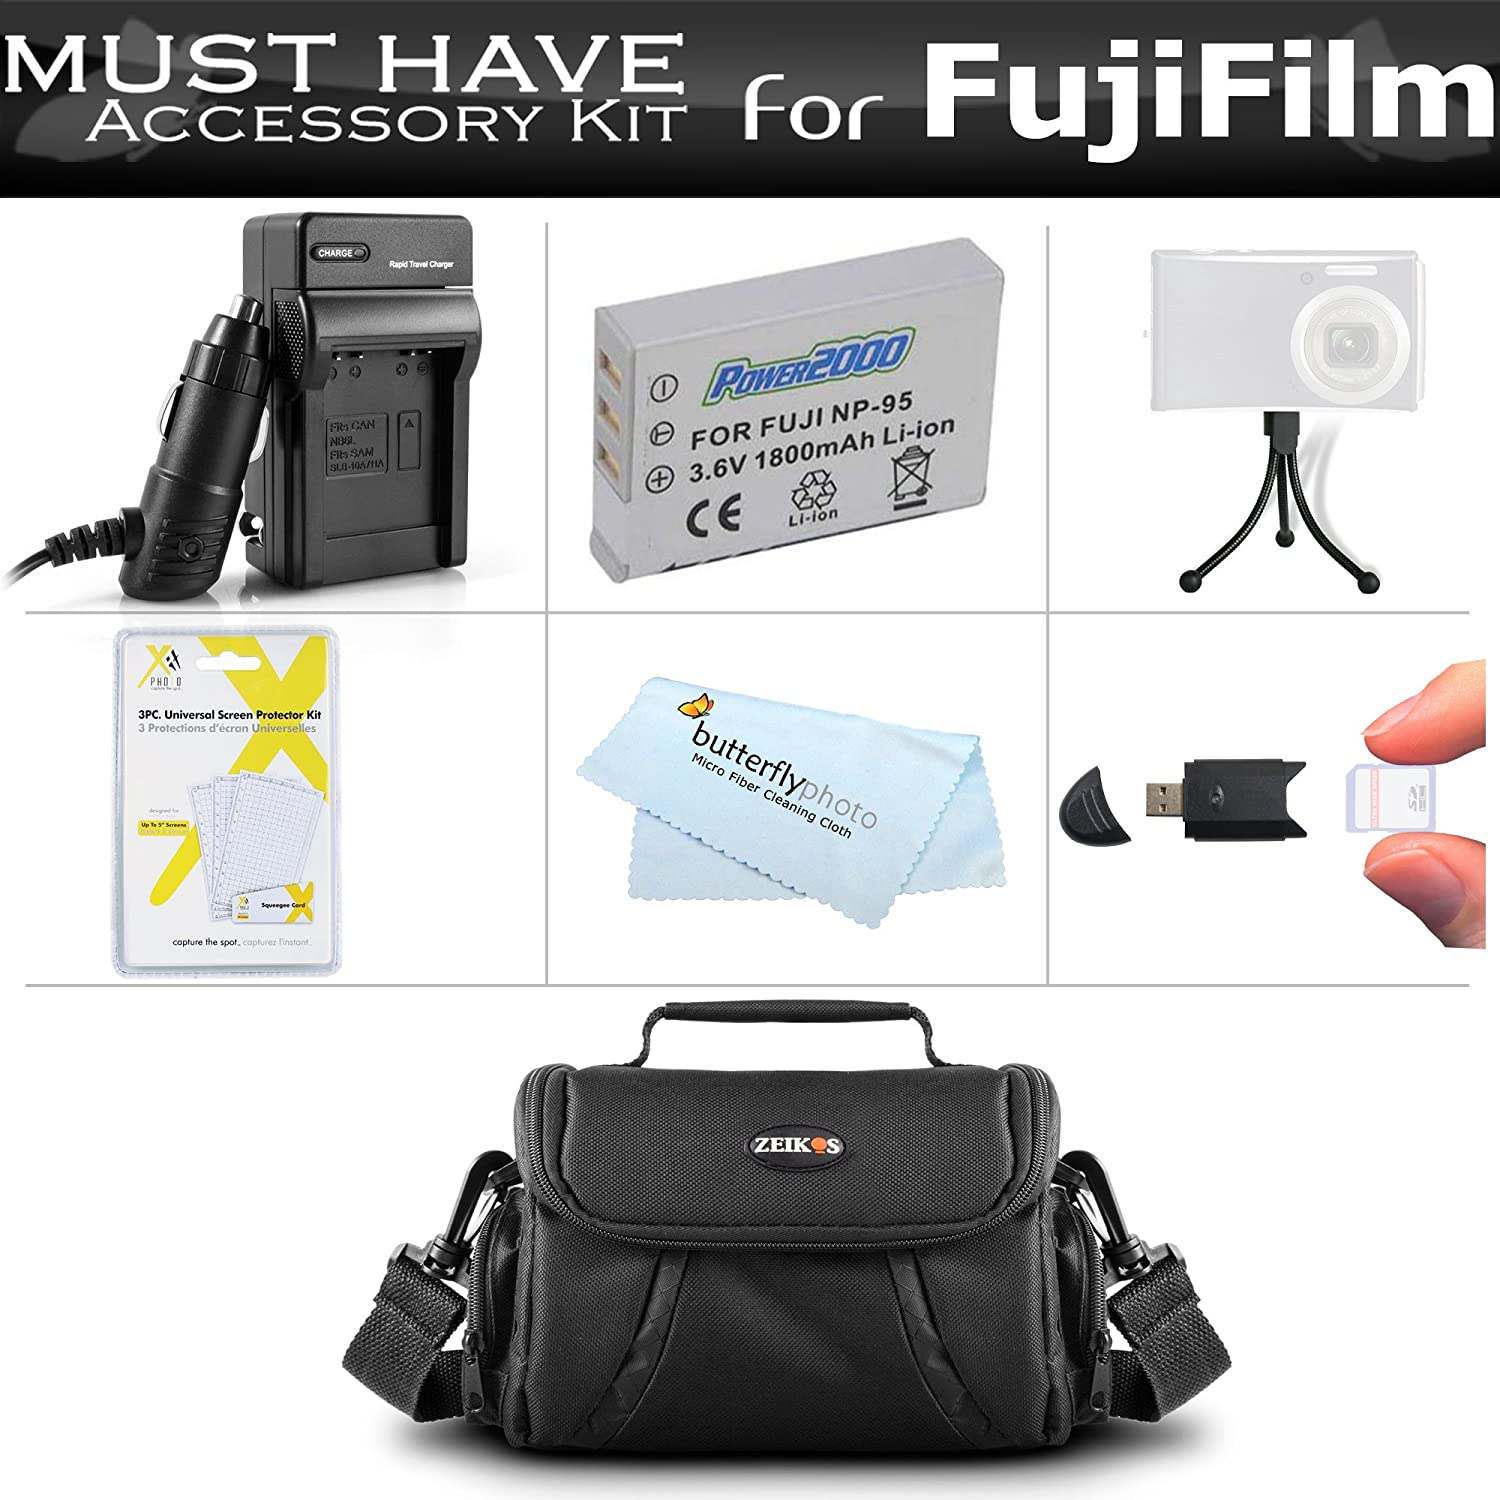 479f10a0 Must Have Accessory Kit for Fuji Fujifilm X70, X30, X100, X100S, X100T  Digital Camera Includes Extended Replacement (1800maH) for Fuji NP-95  Battery + Ac/Dc ...